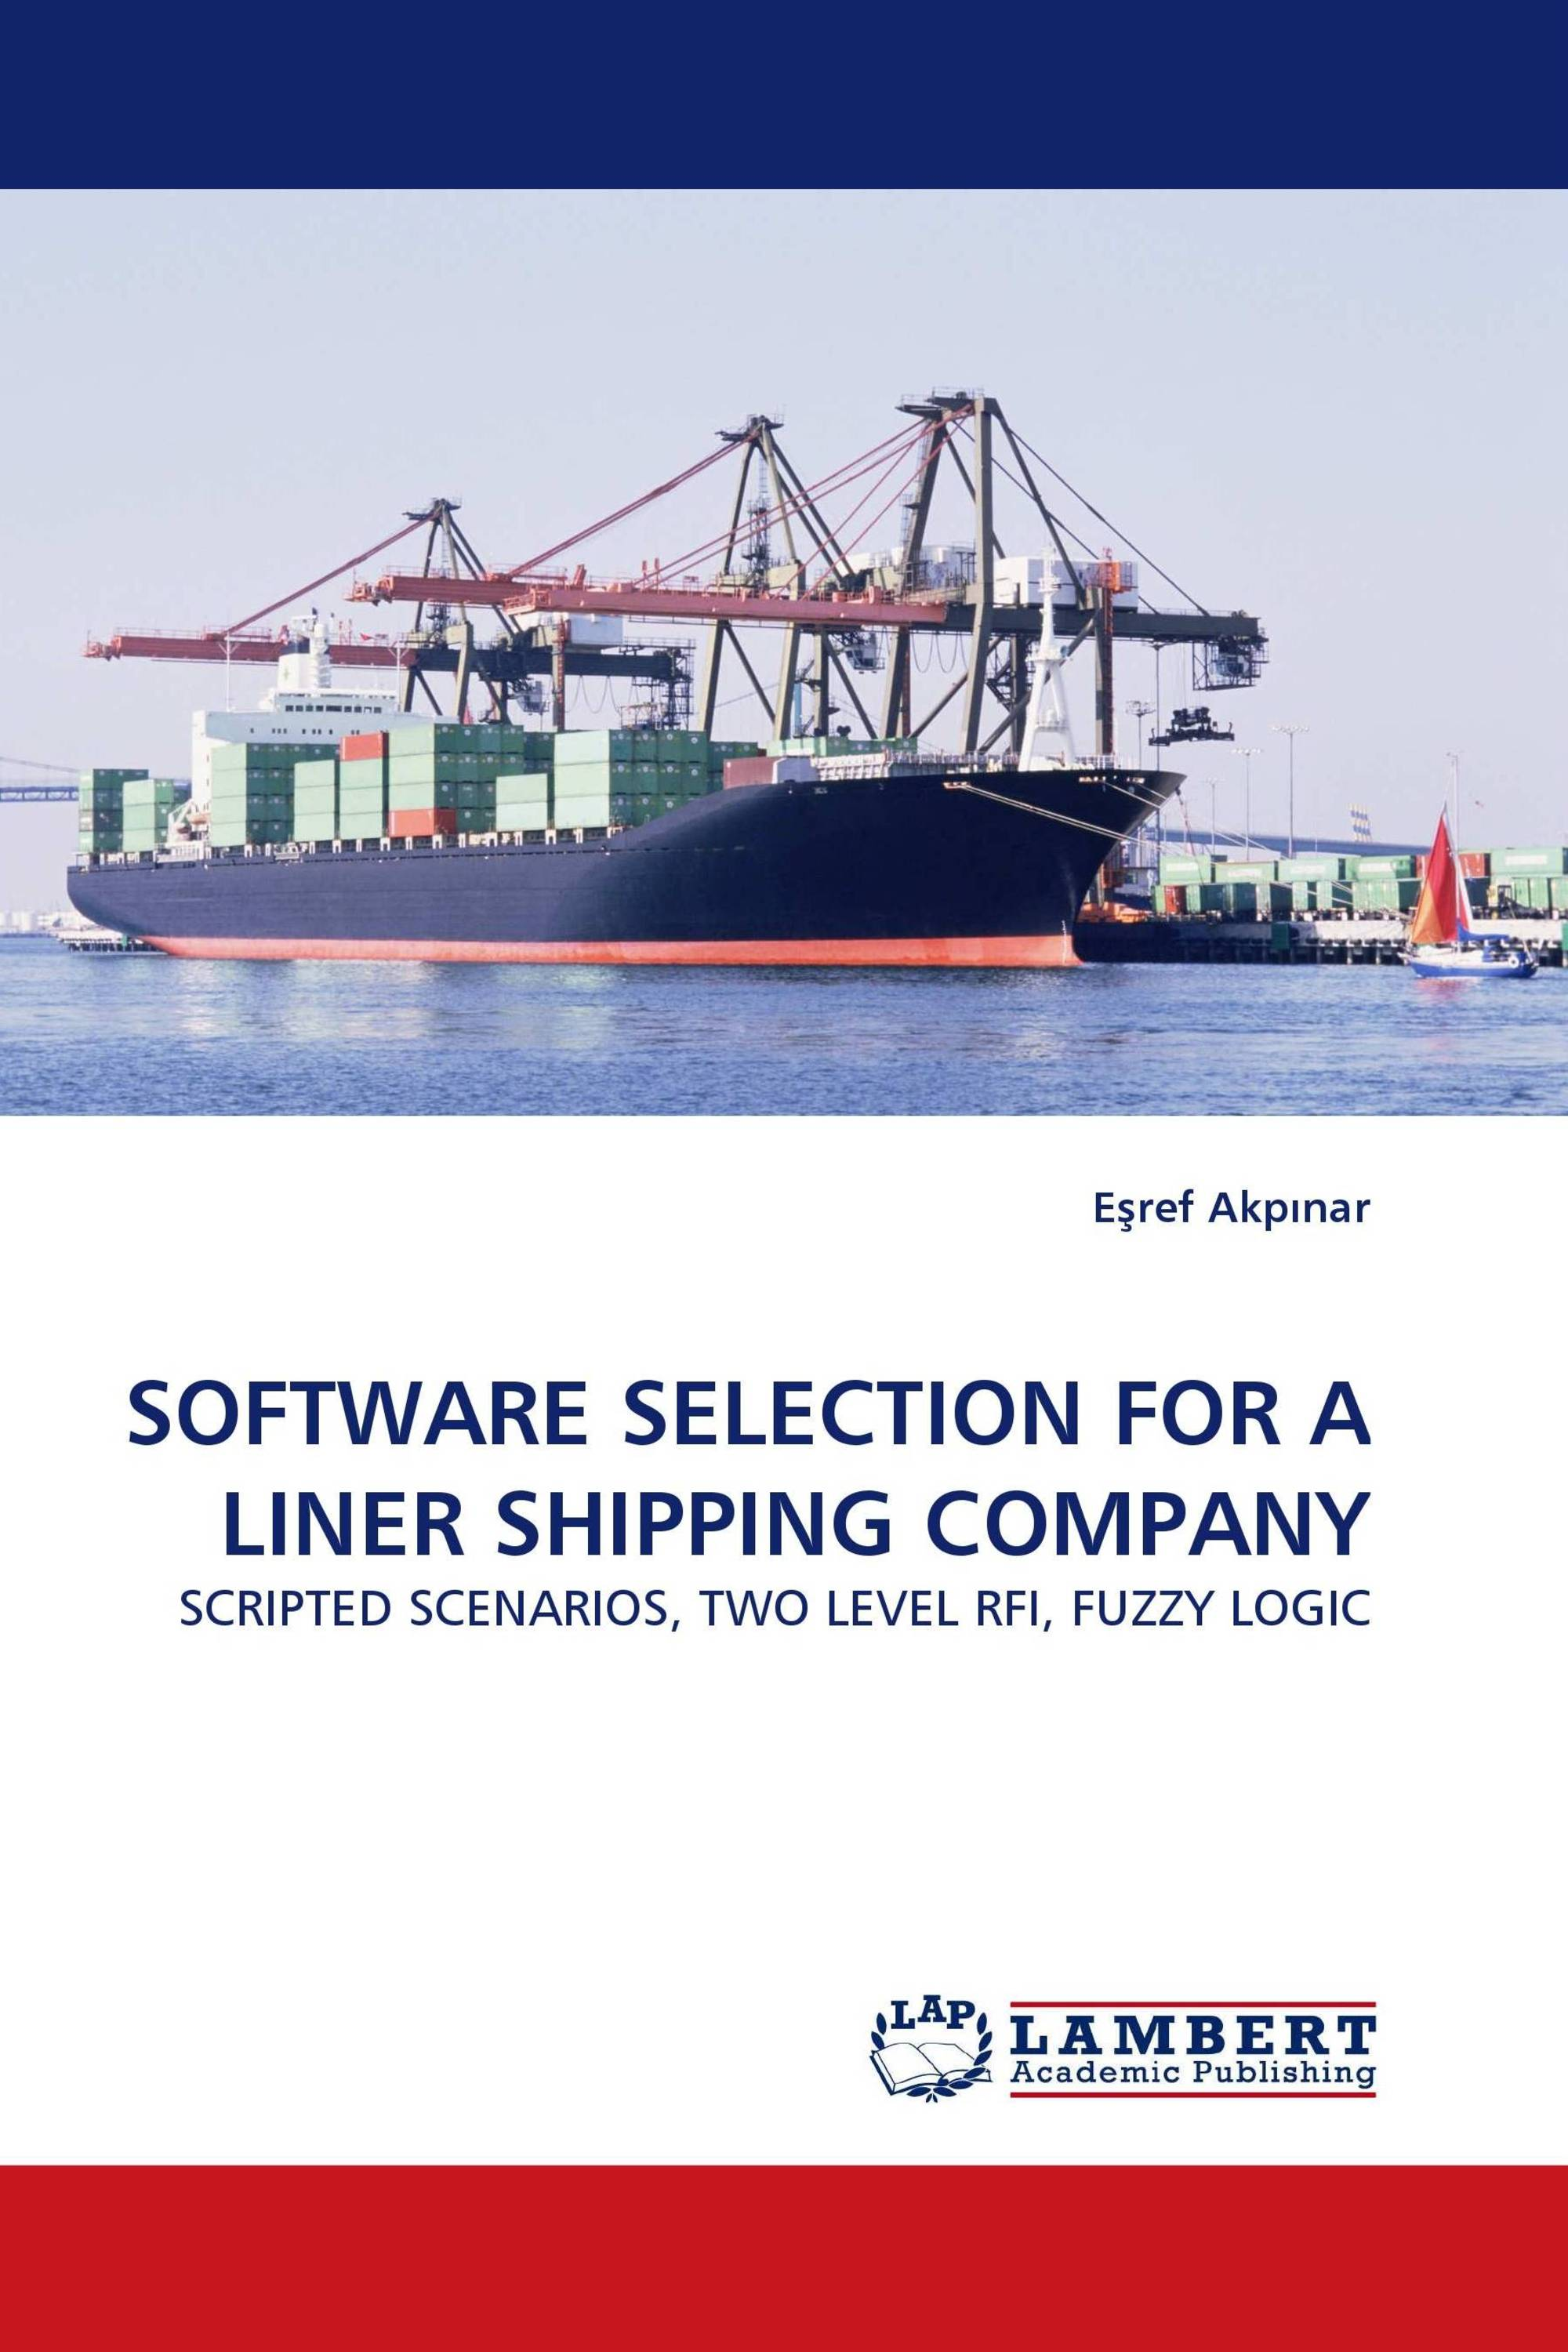 SOFTWARE SELECTION FOR A LINER SHIPPING COMPANY / 978-3-8443